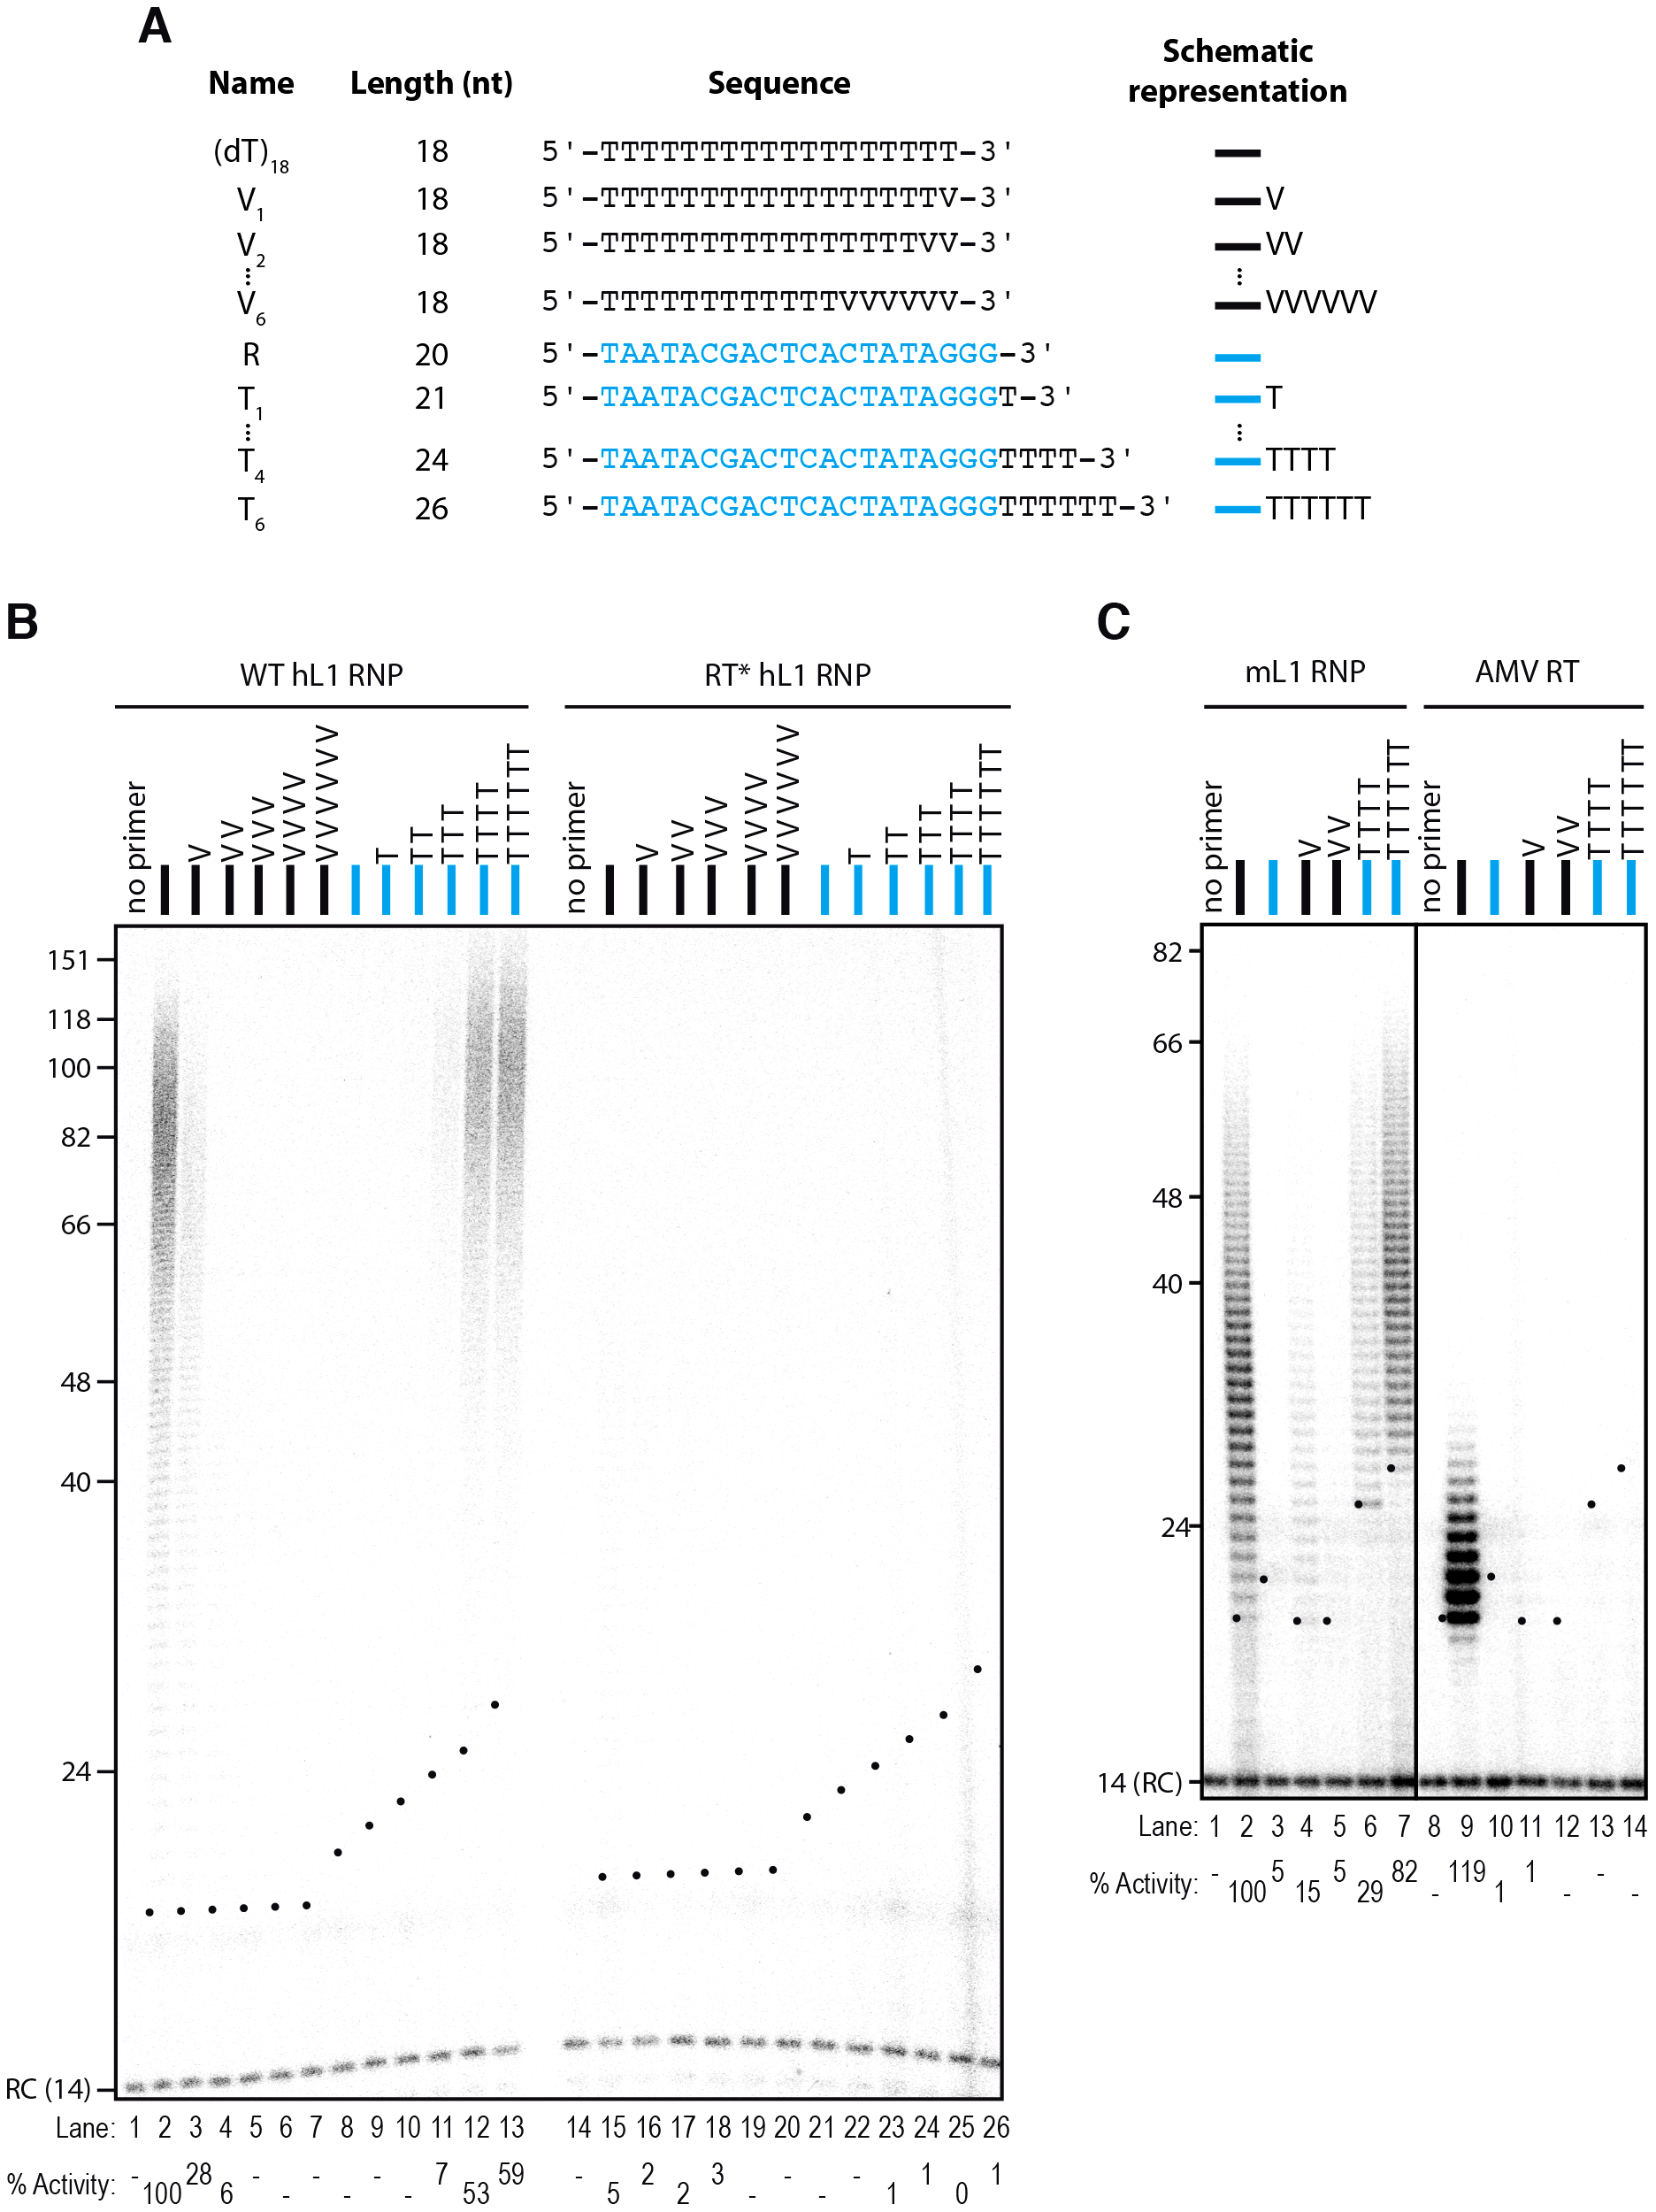 The L1 RNP preferentially extends primers ending with at least 4 Ts.